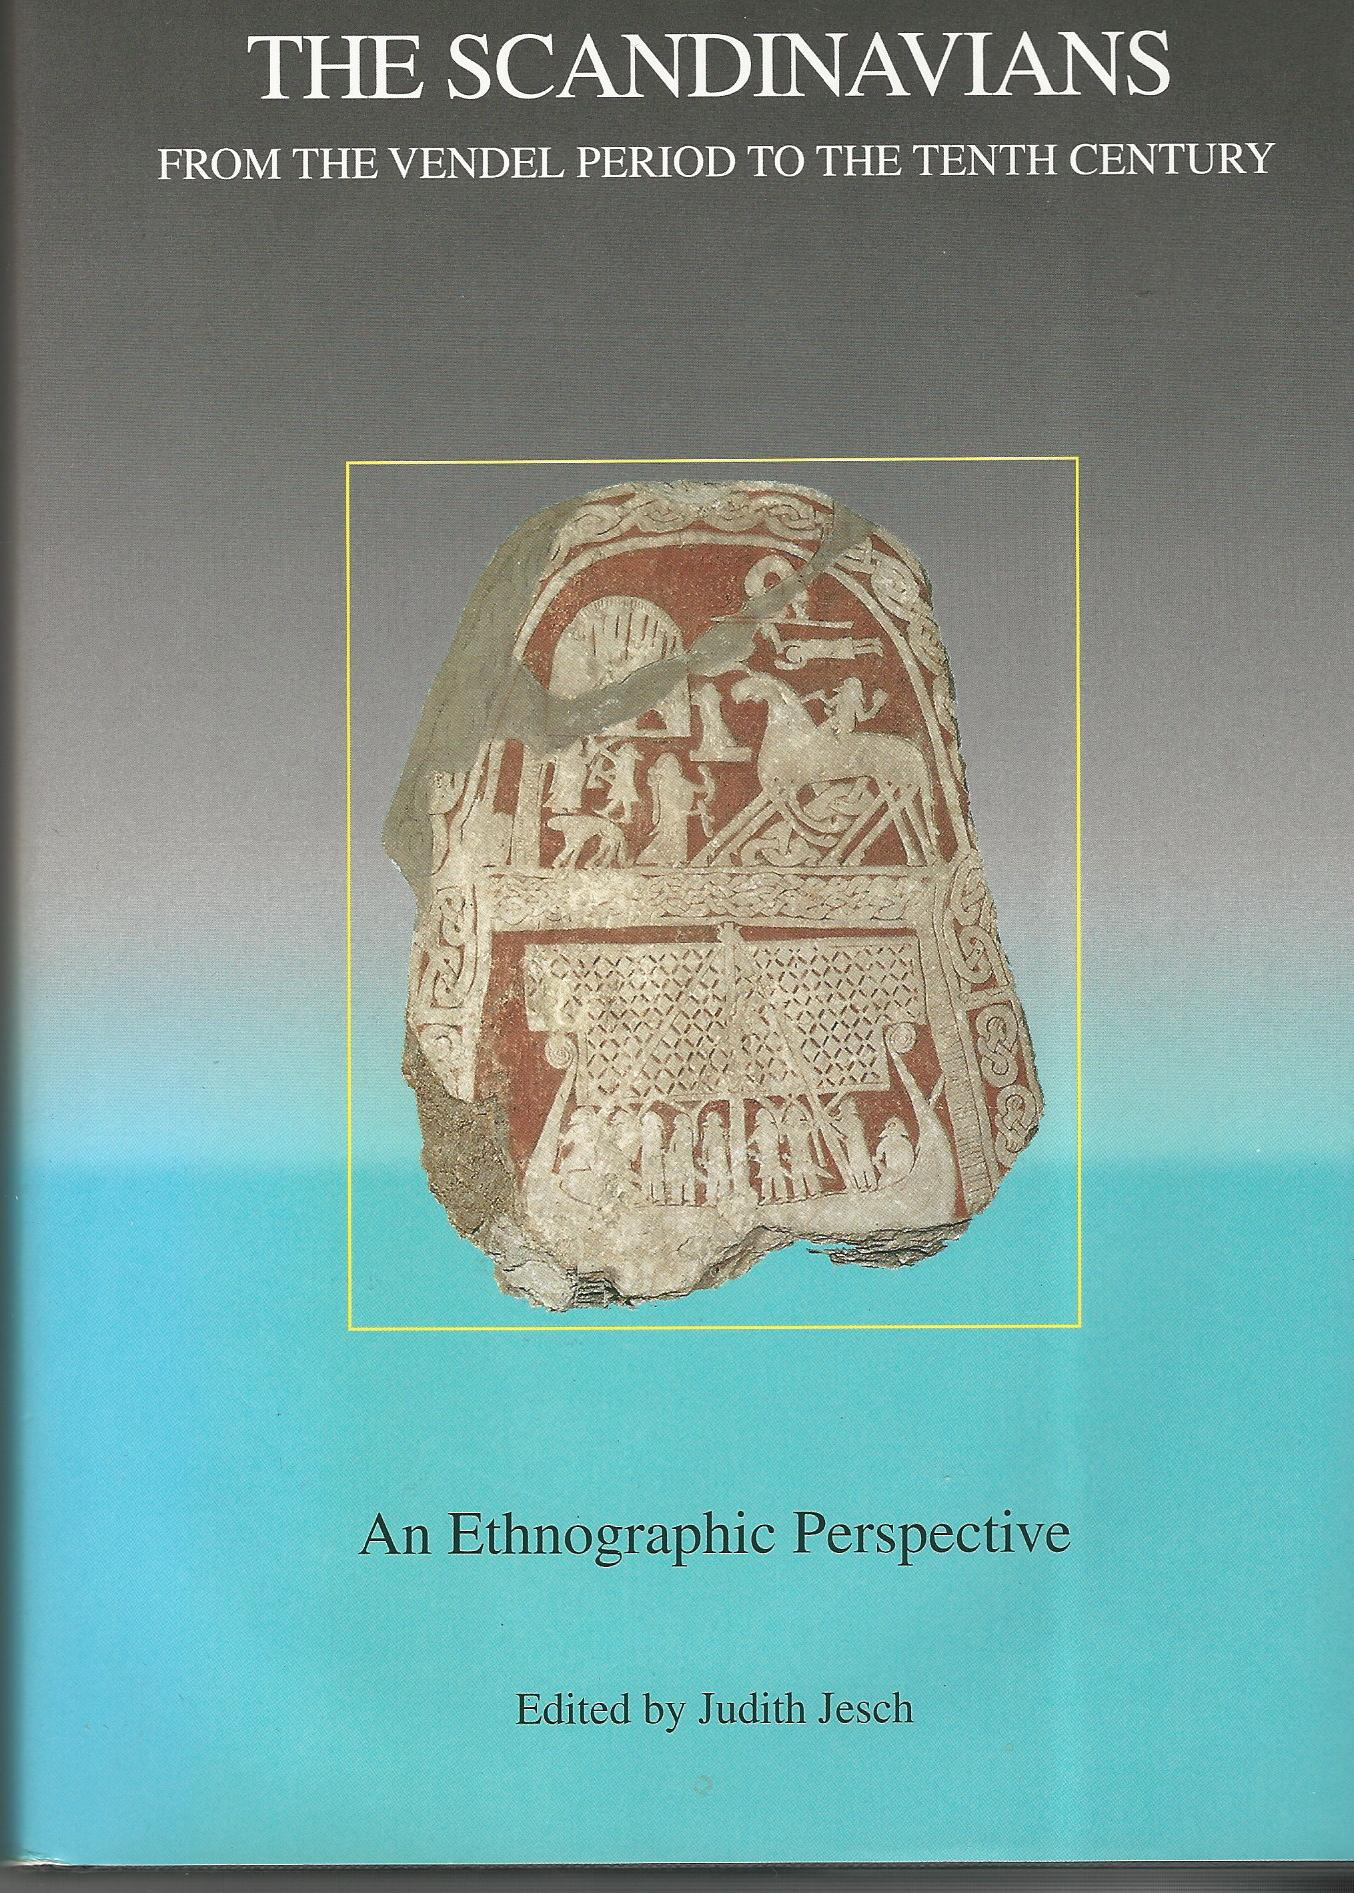 Image for The Scandinavians from the Vendel Period to the Tenth Century: An Ethnographic Perspective (Studies in Historical Archaeoethnology)